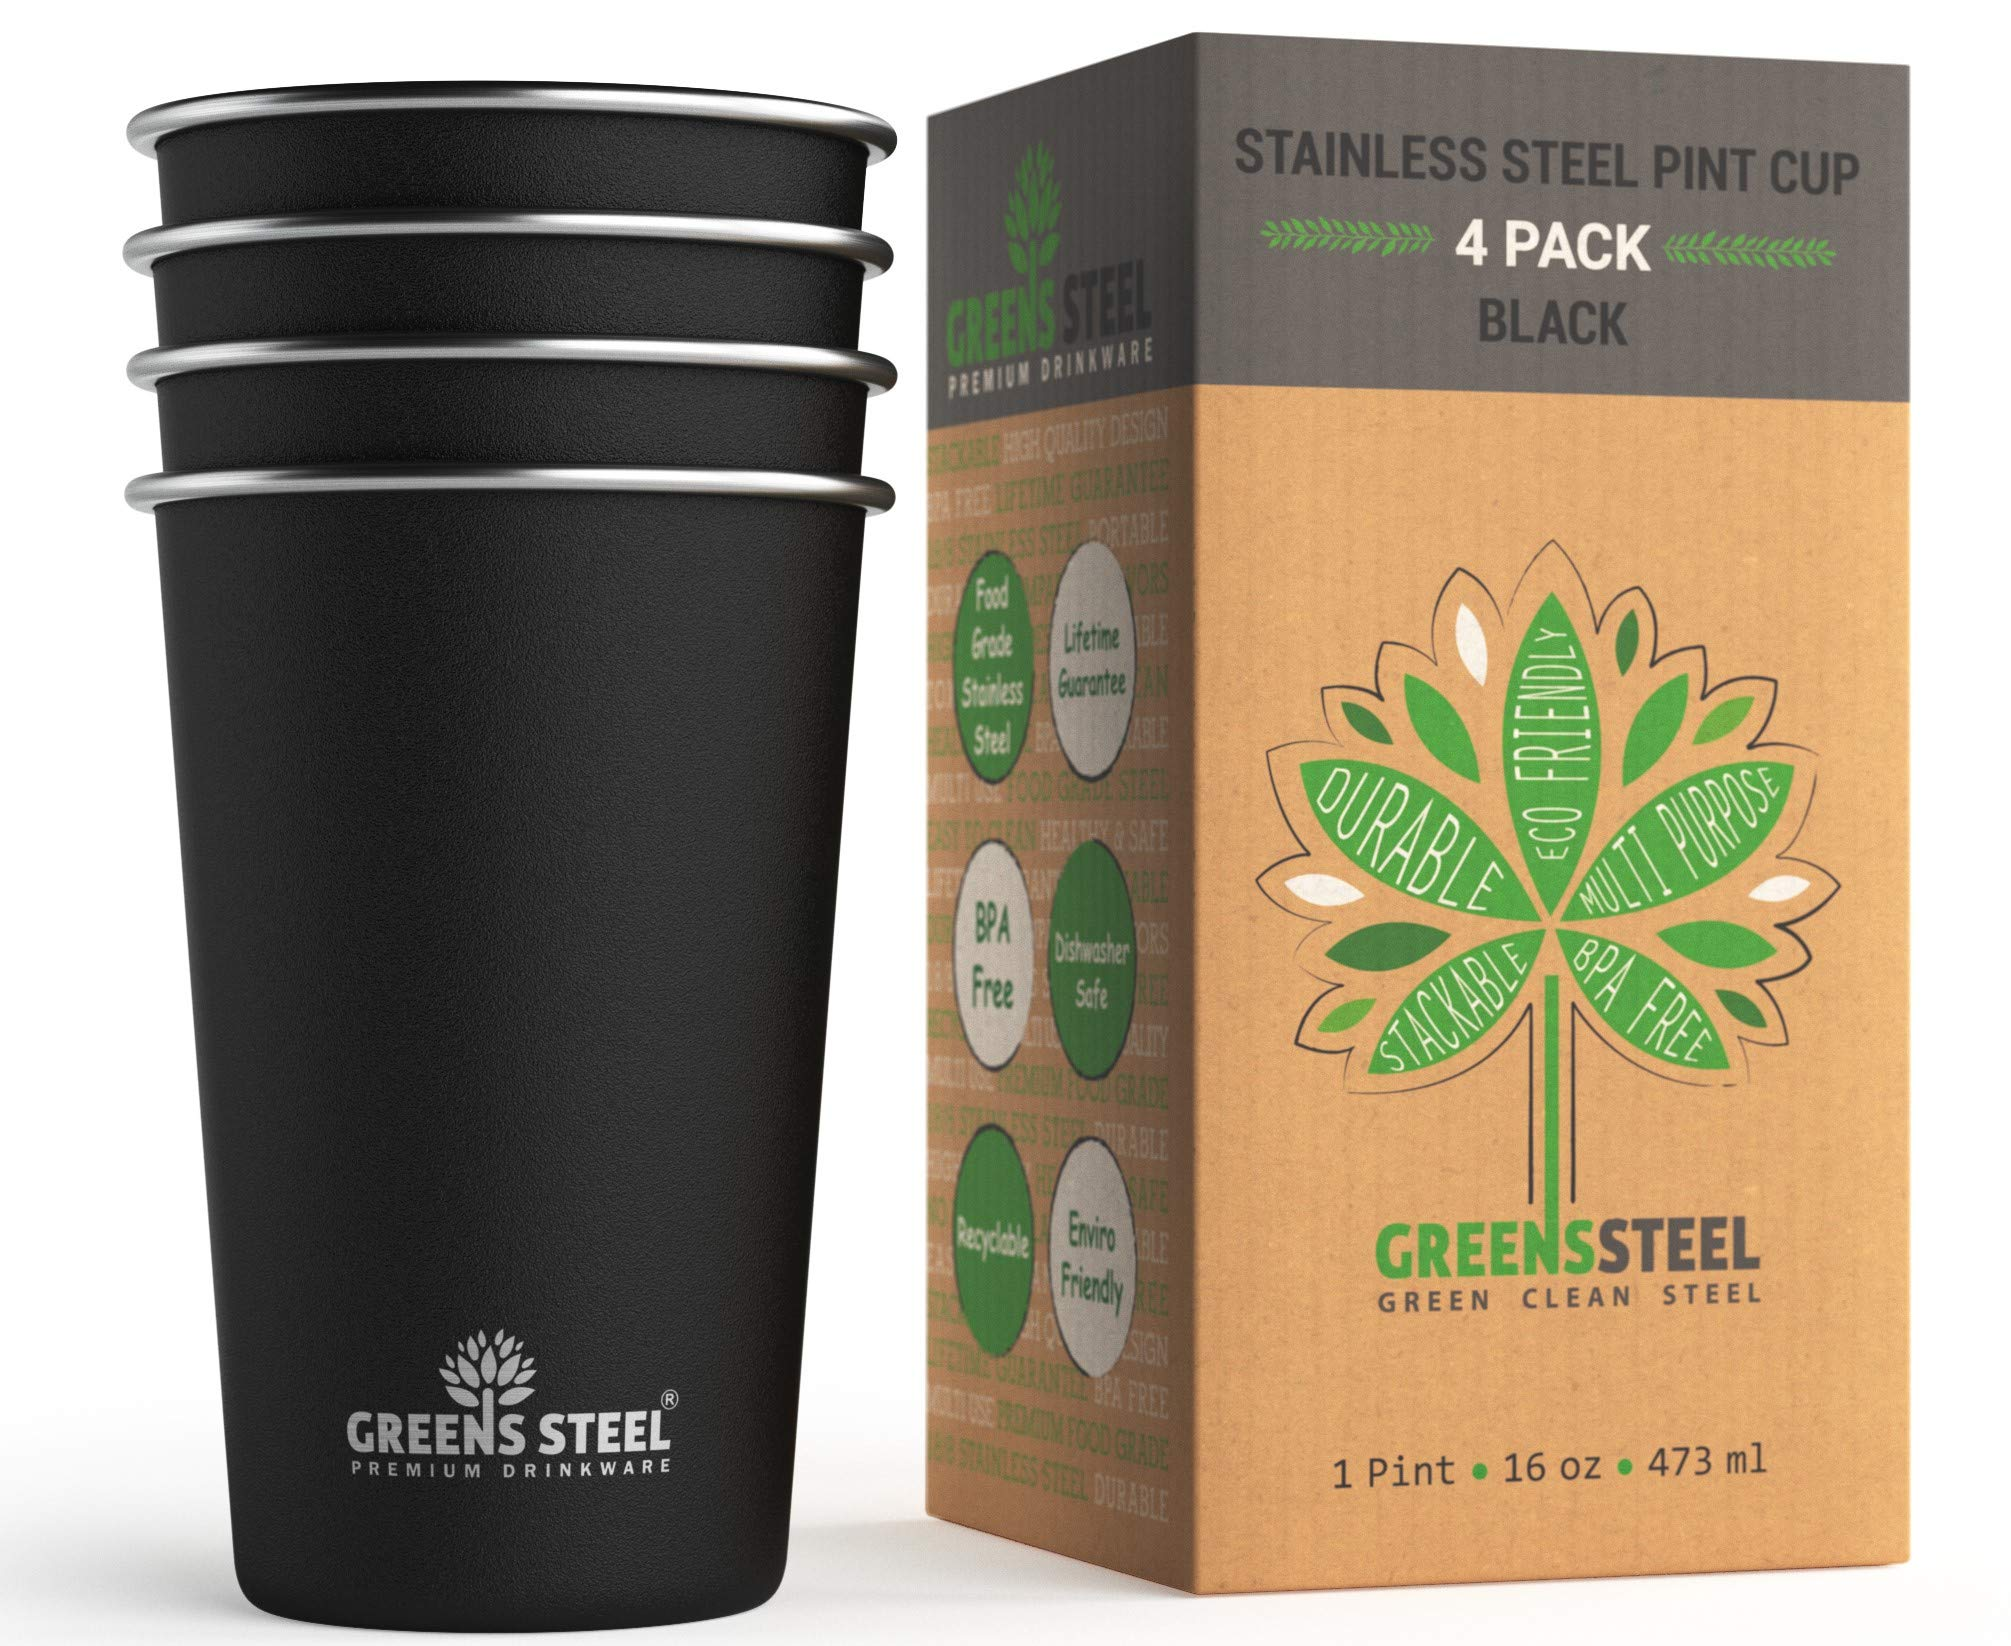 Stainless Steel Cups - 16oz Pint Tumbler (4 Pack) - Premium Metal Drinking Glasses | Stackable Durable Cup (16oz Black)